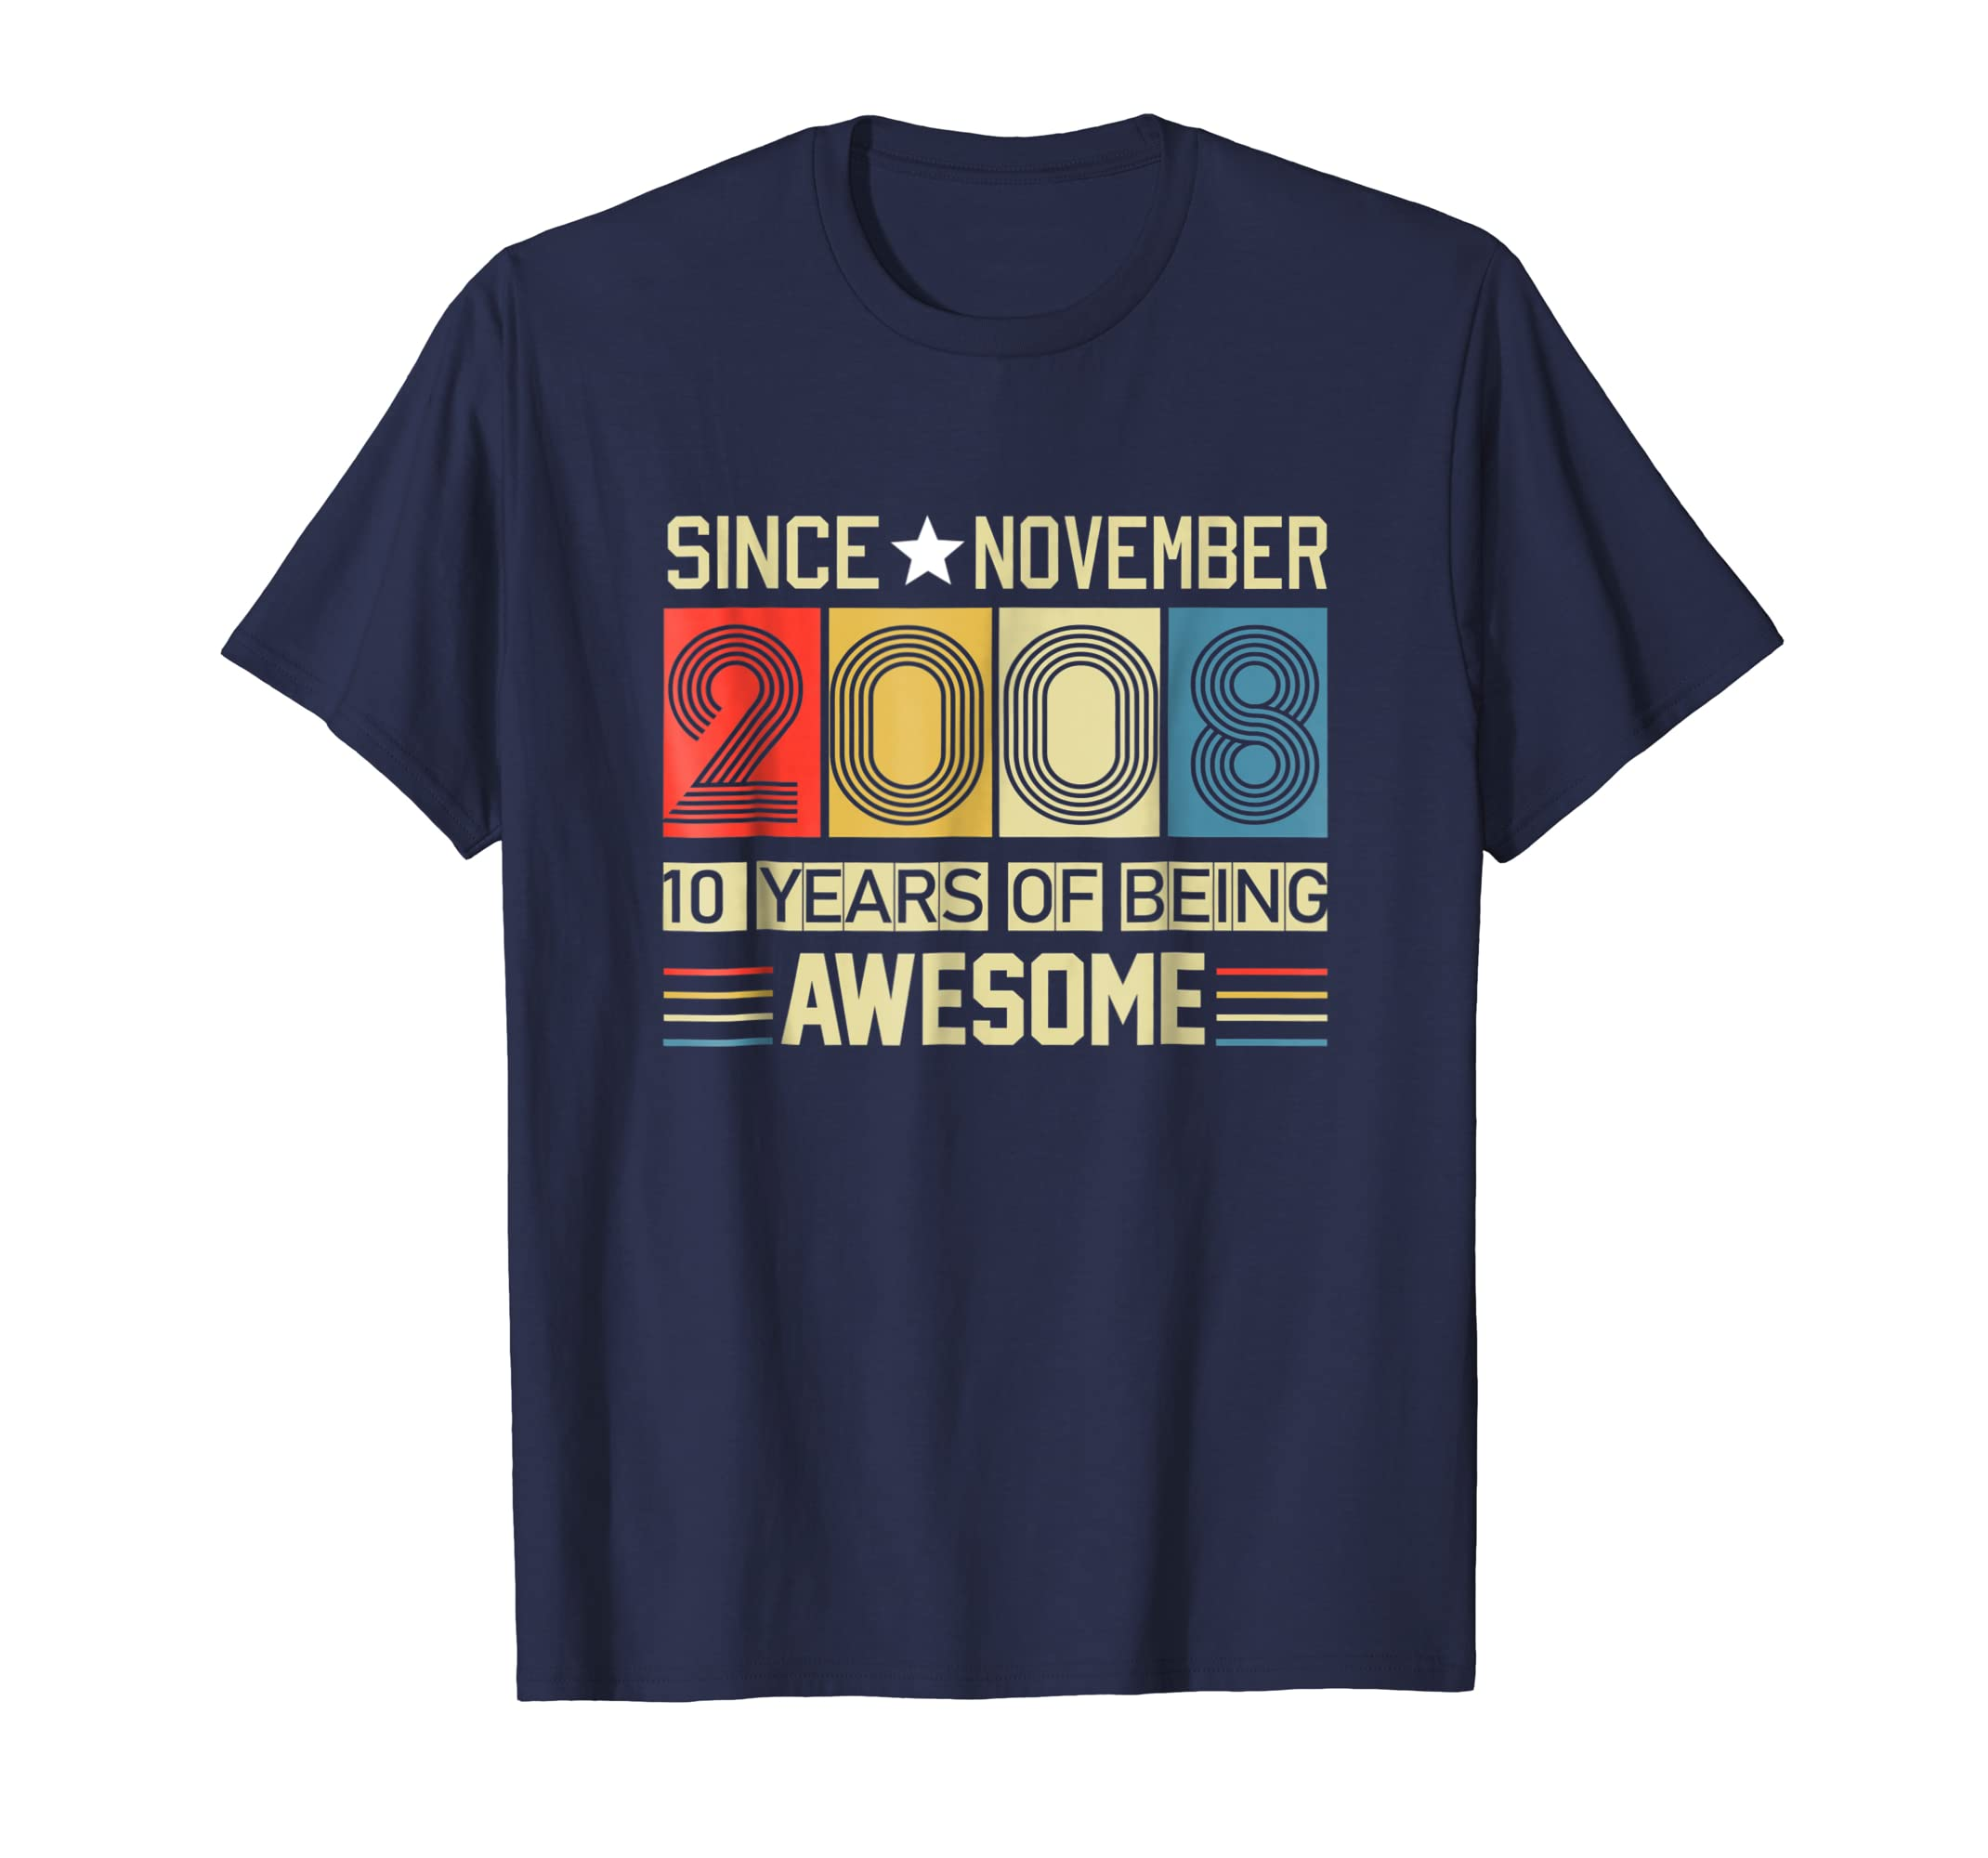 Awesome Since November 2008 T Shirt 10 Years old Birthday-azvn